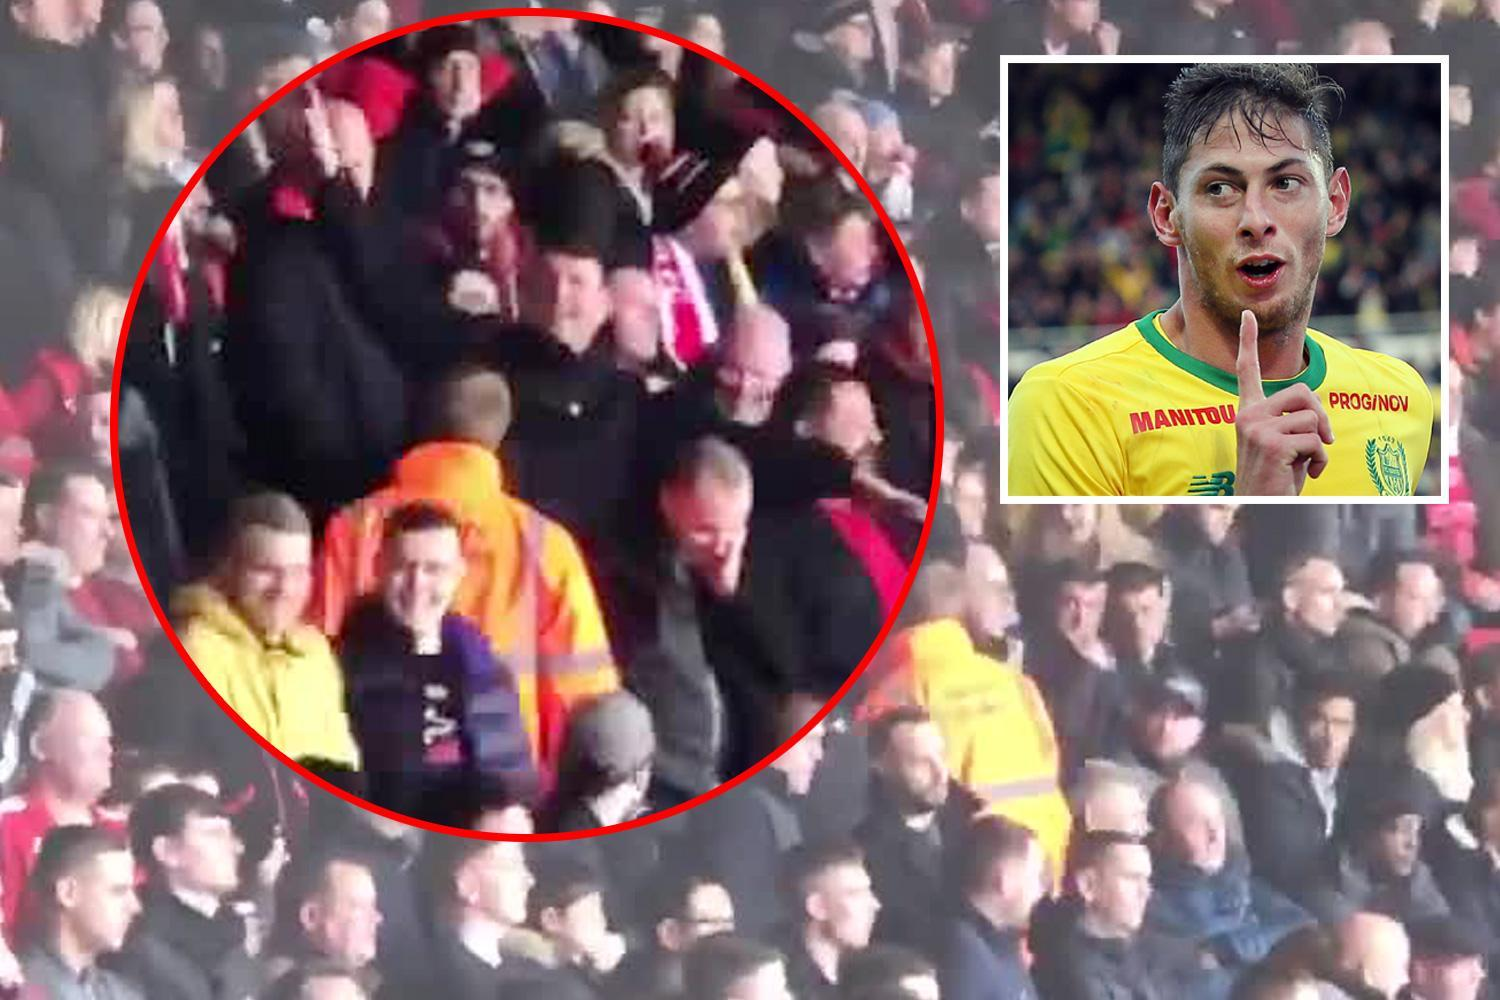 Southampton to ban fans that made plane gestures at Cardiff supporters after Sala tragedy